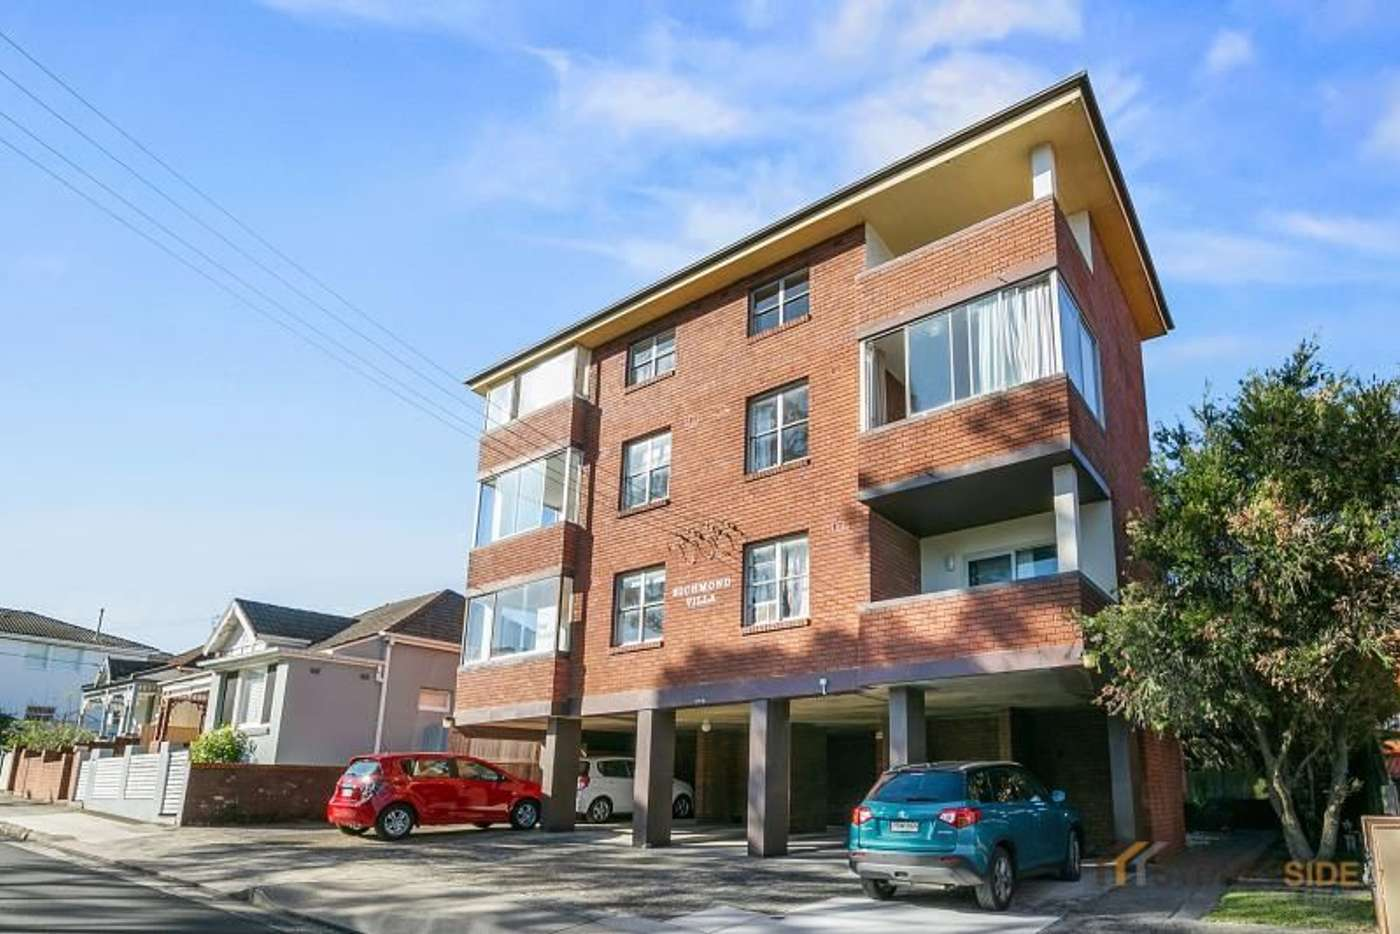 Main view of Homely apartment listing, 9/7-9 Randwick St, Randwick NSW 2031